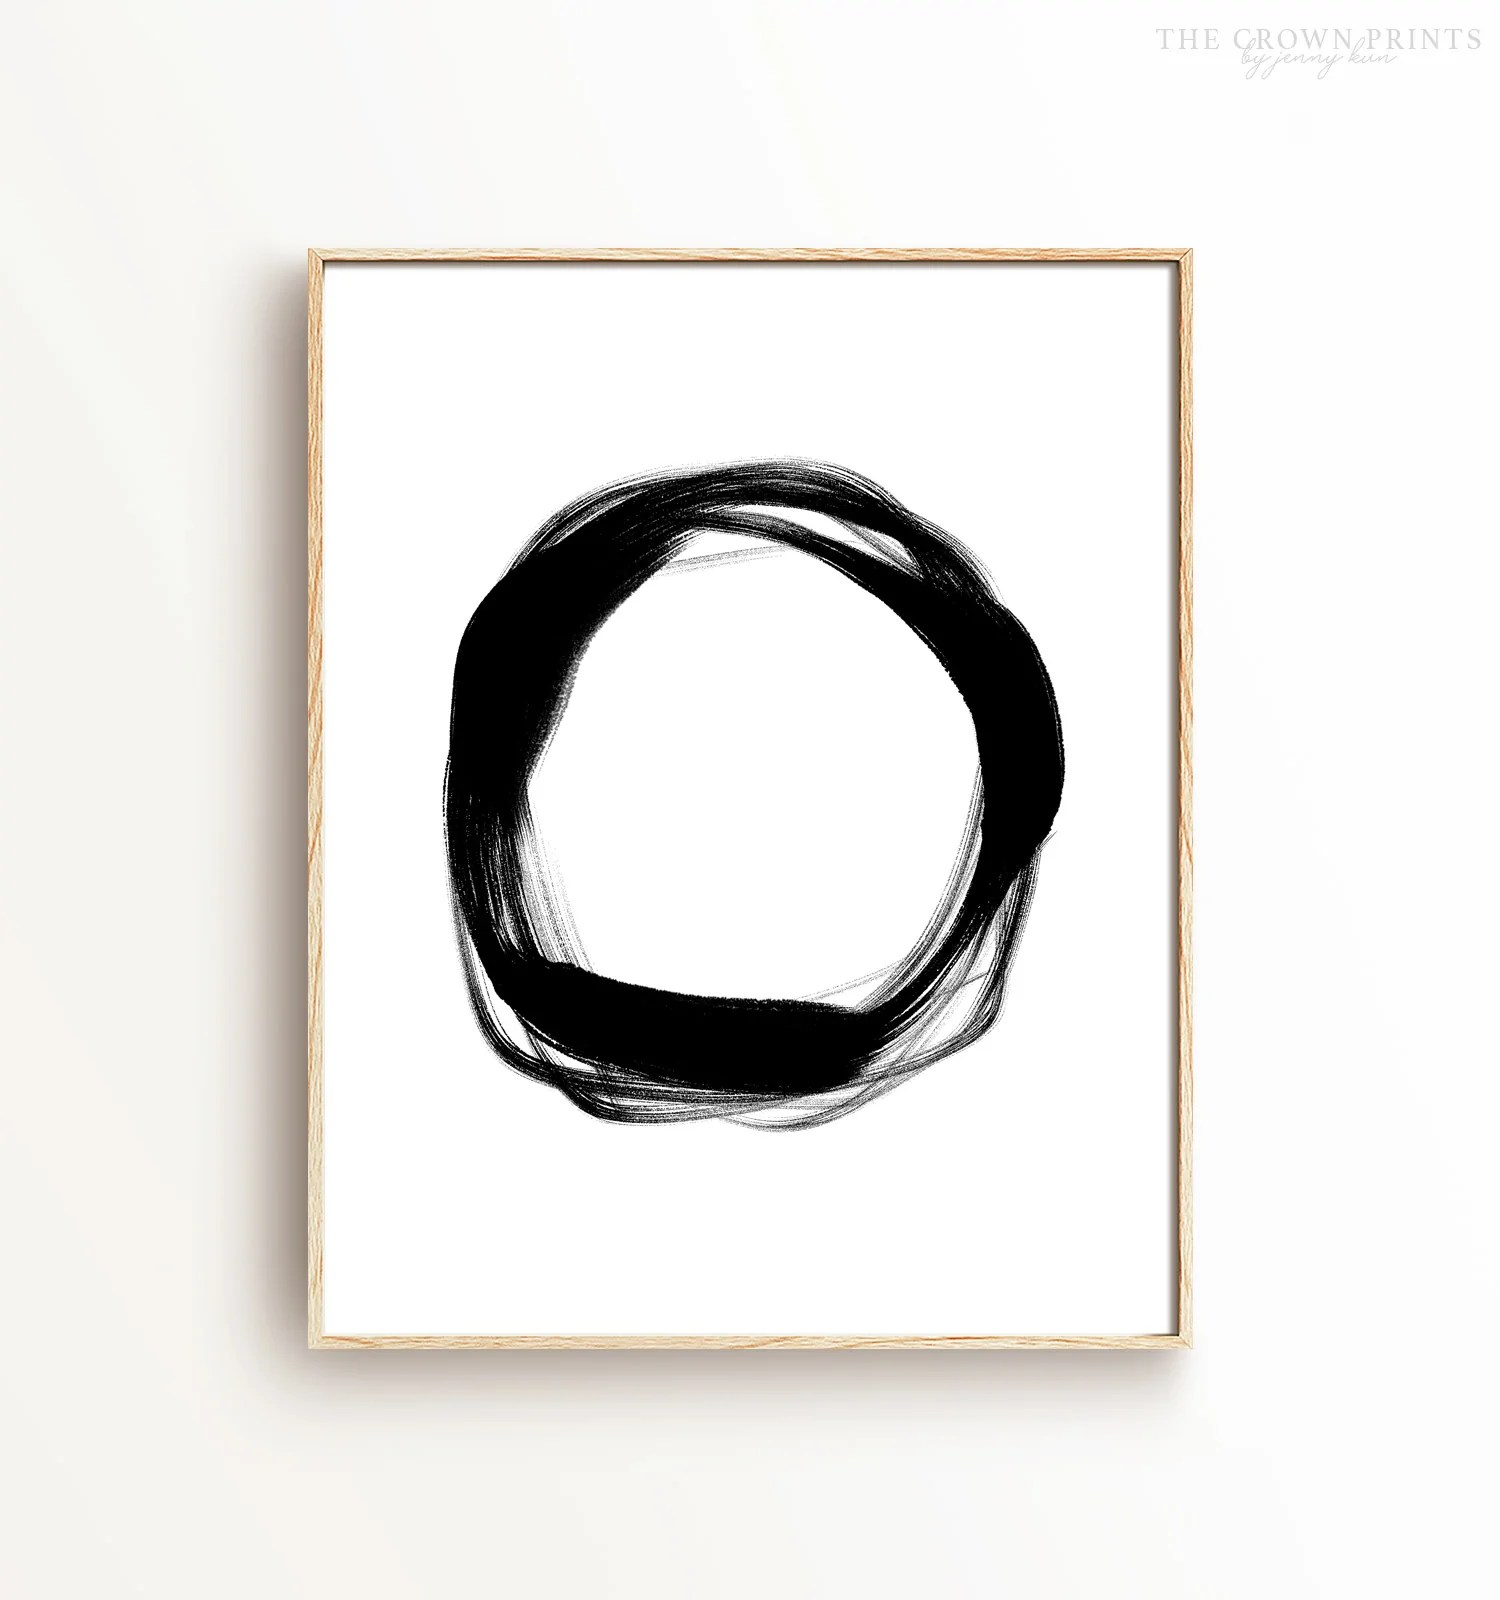 Abstract Black White Ring Printable Art The Crown Prints